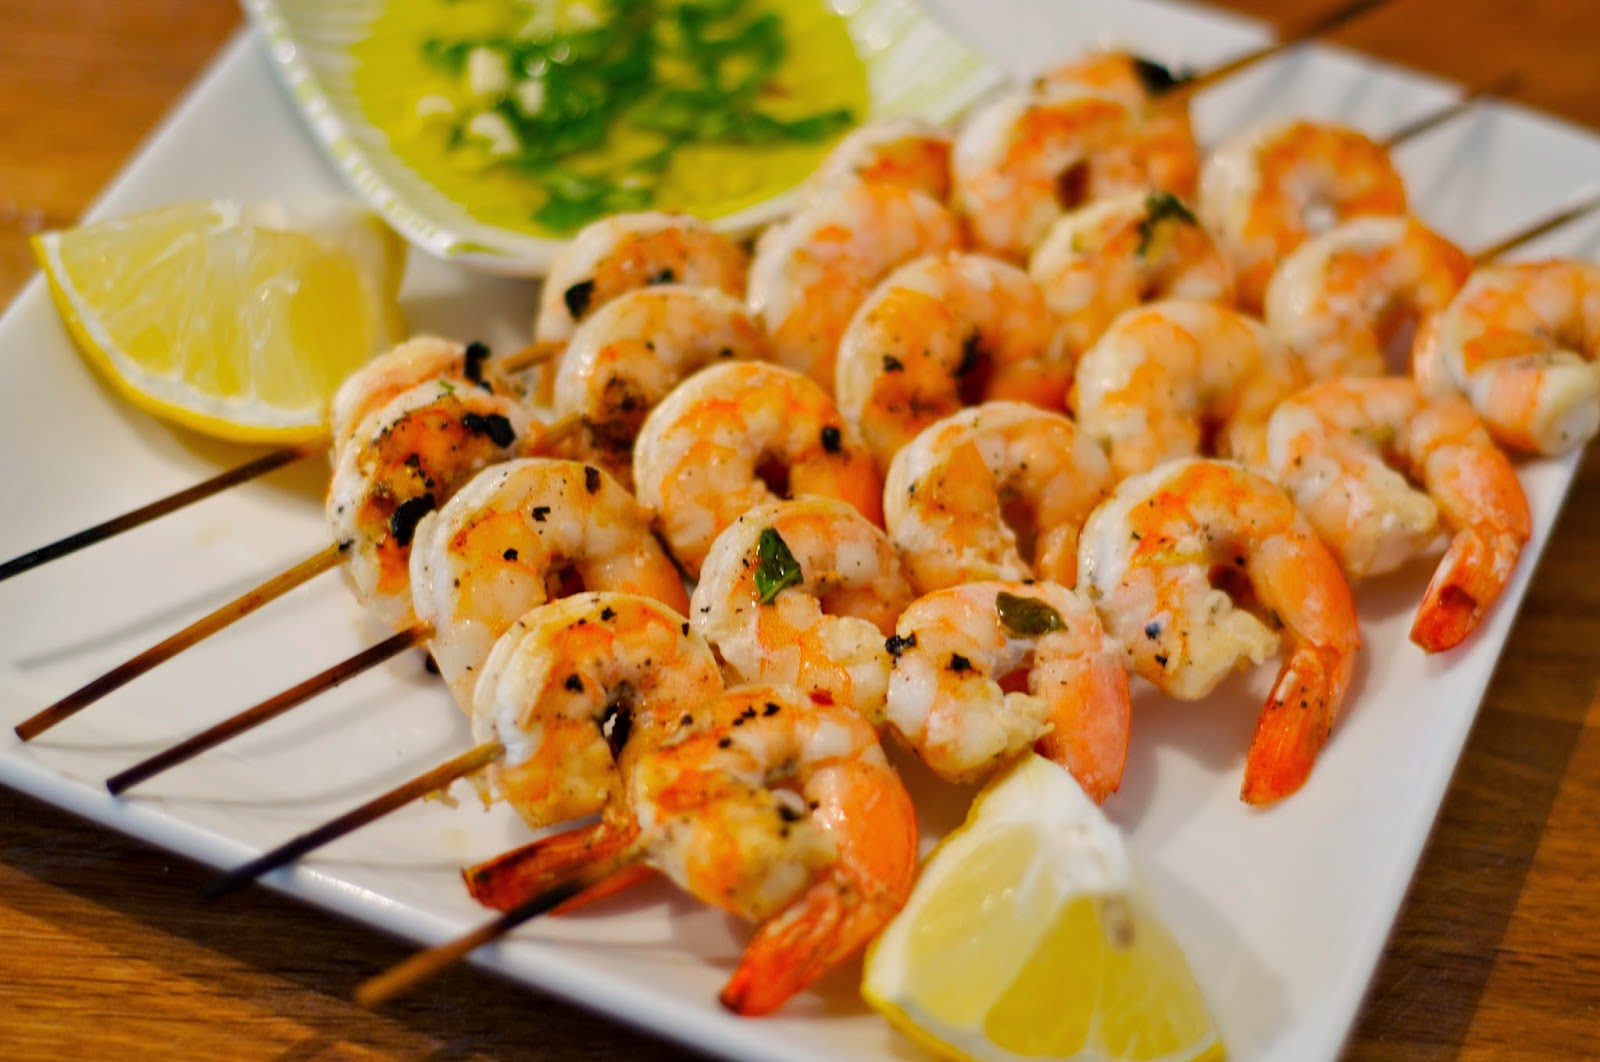 One Classy Dish: Lemon Garlic Grilled Shrimp